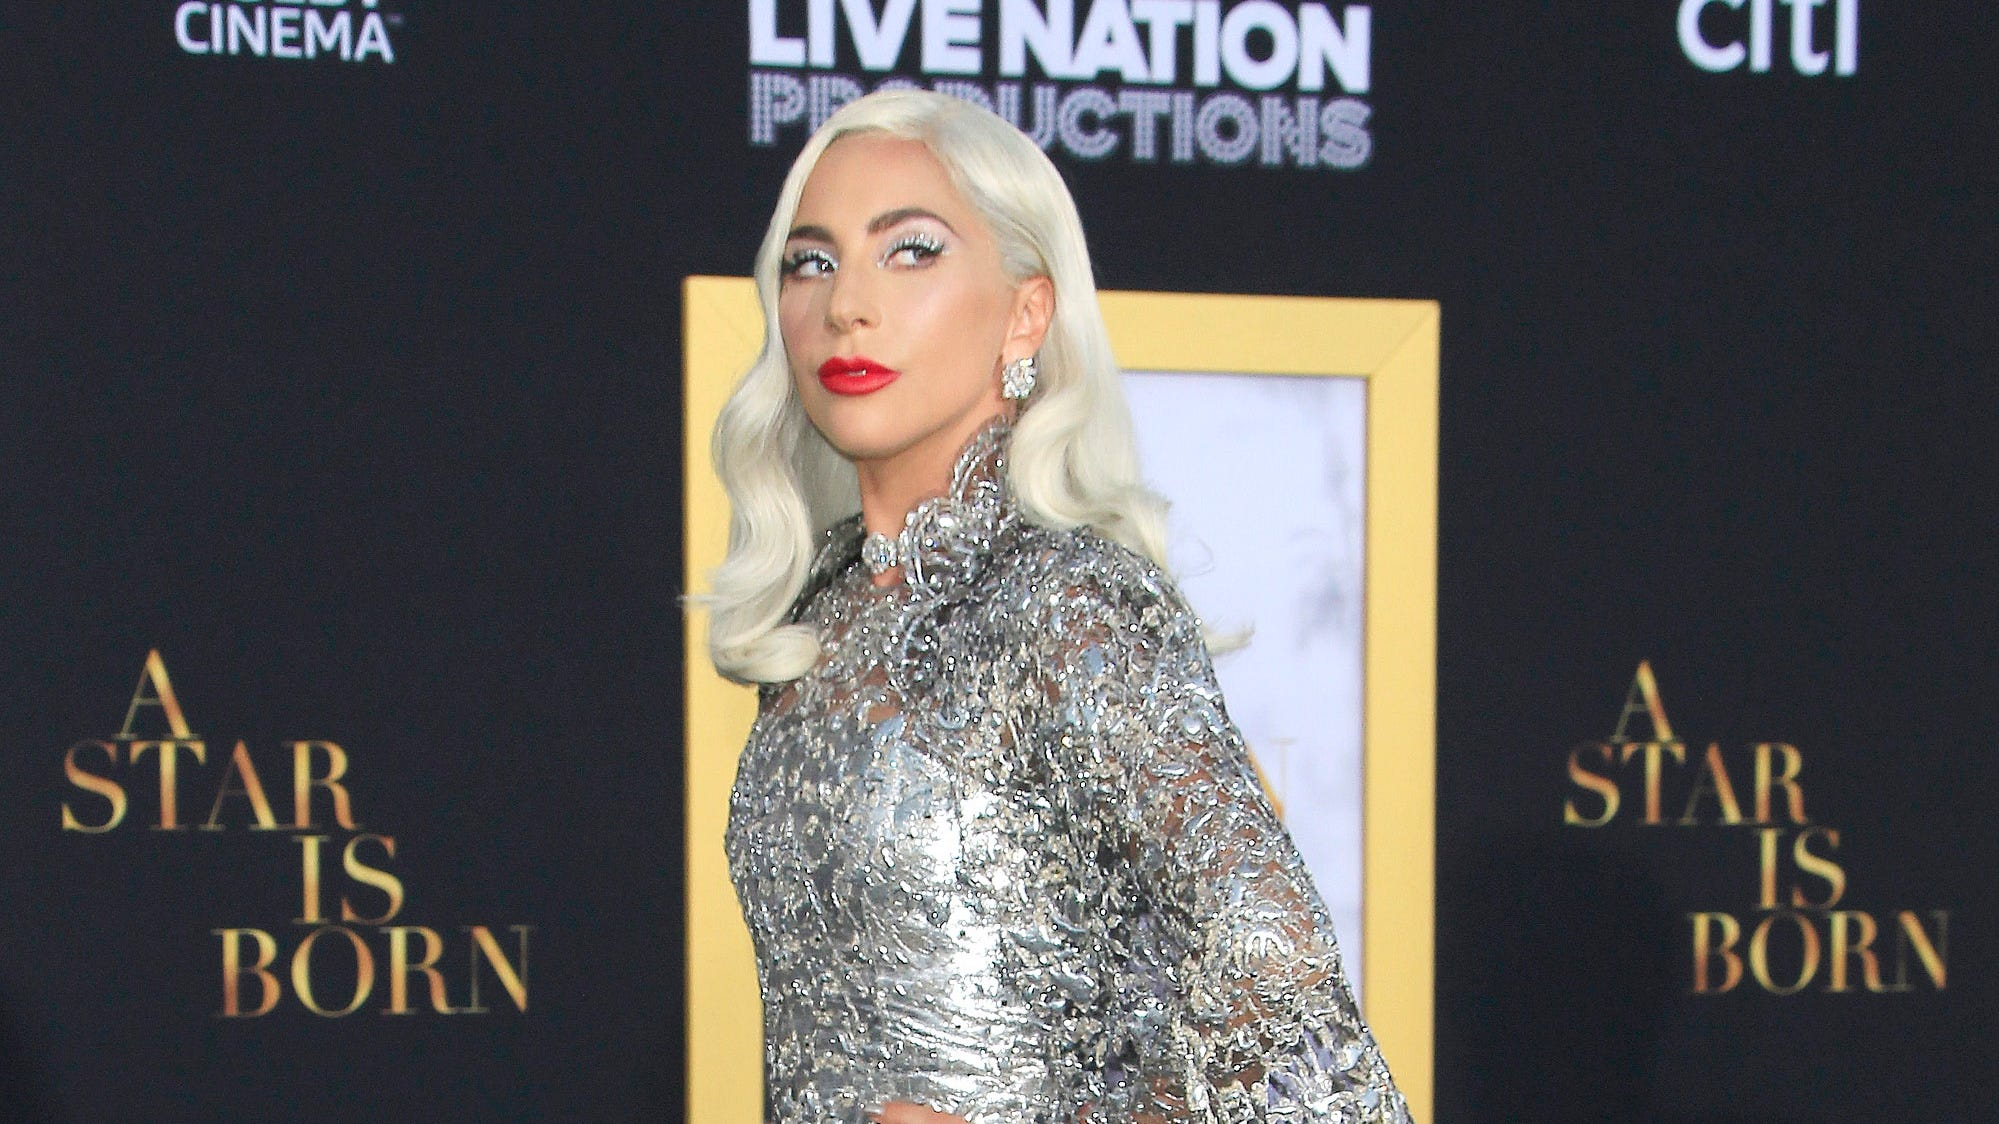 Gaga did not disappoint in a stunning silver gown.